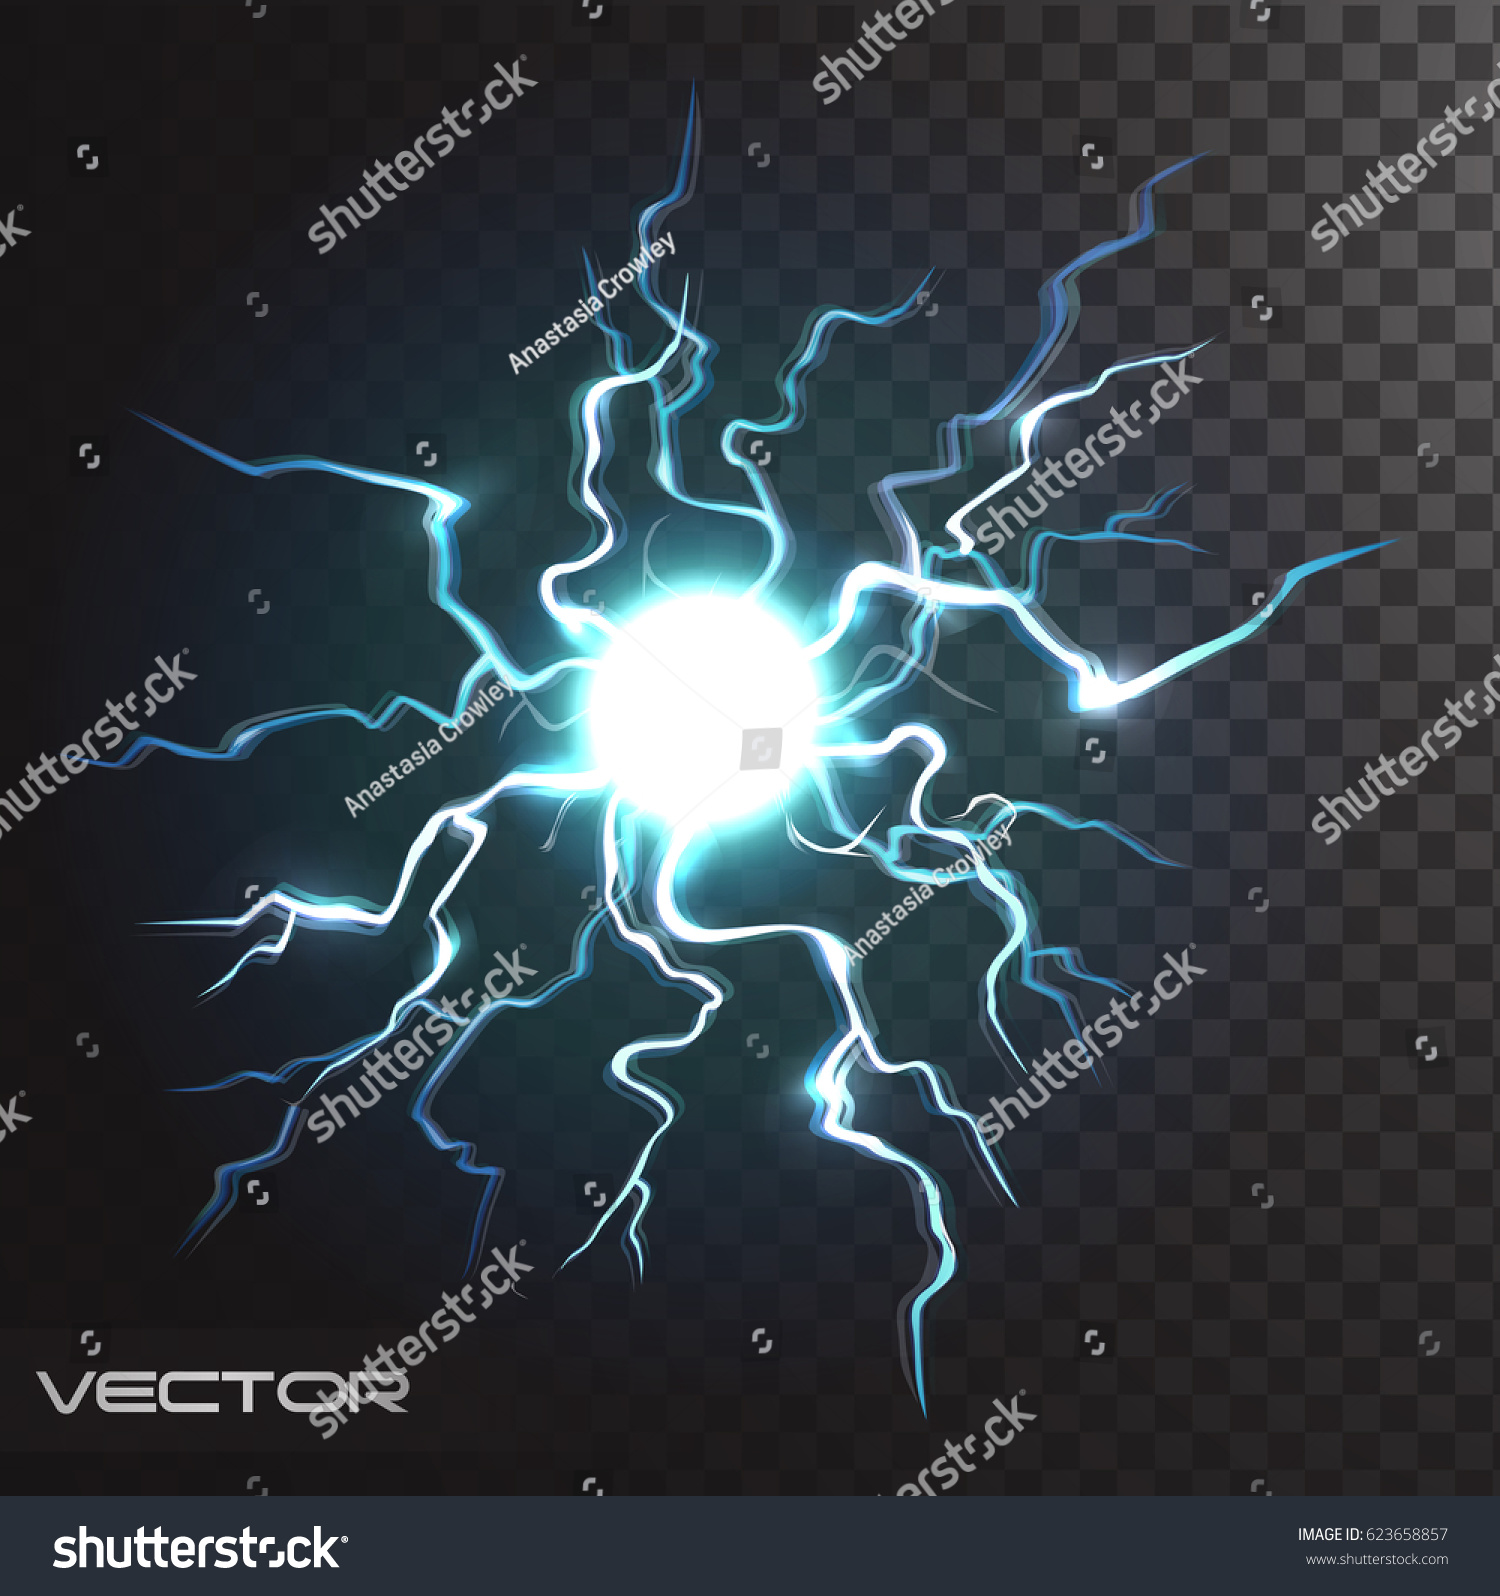 Isolated Realistic Lightning Bolt Transparency Design Stock Vector Royalty Free 623658857